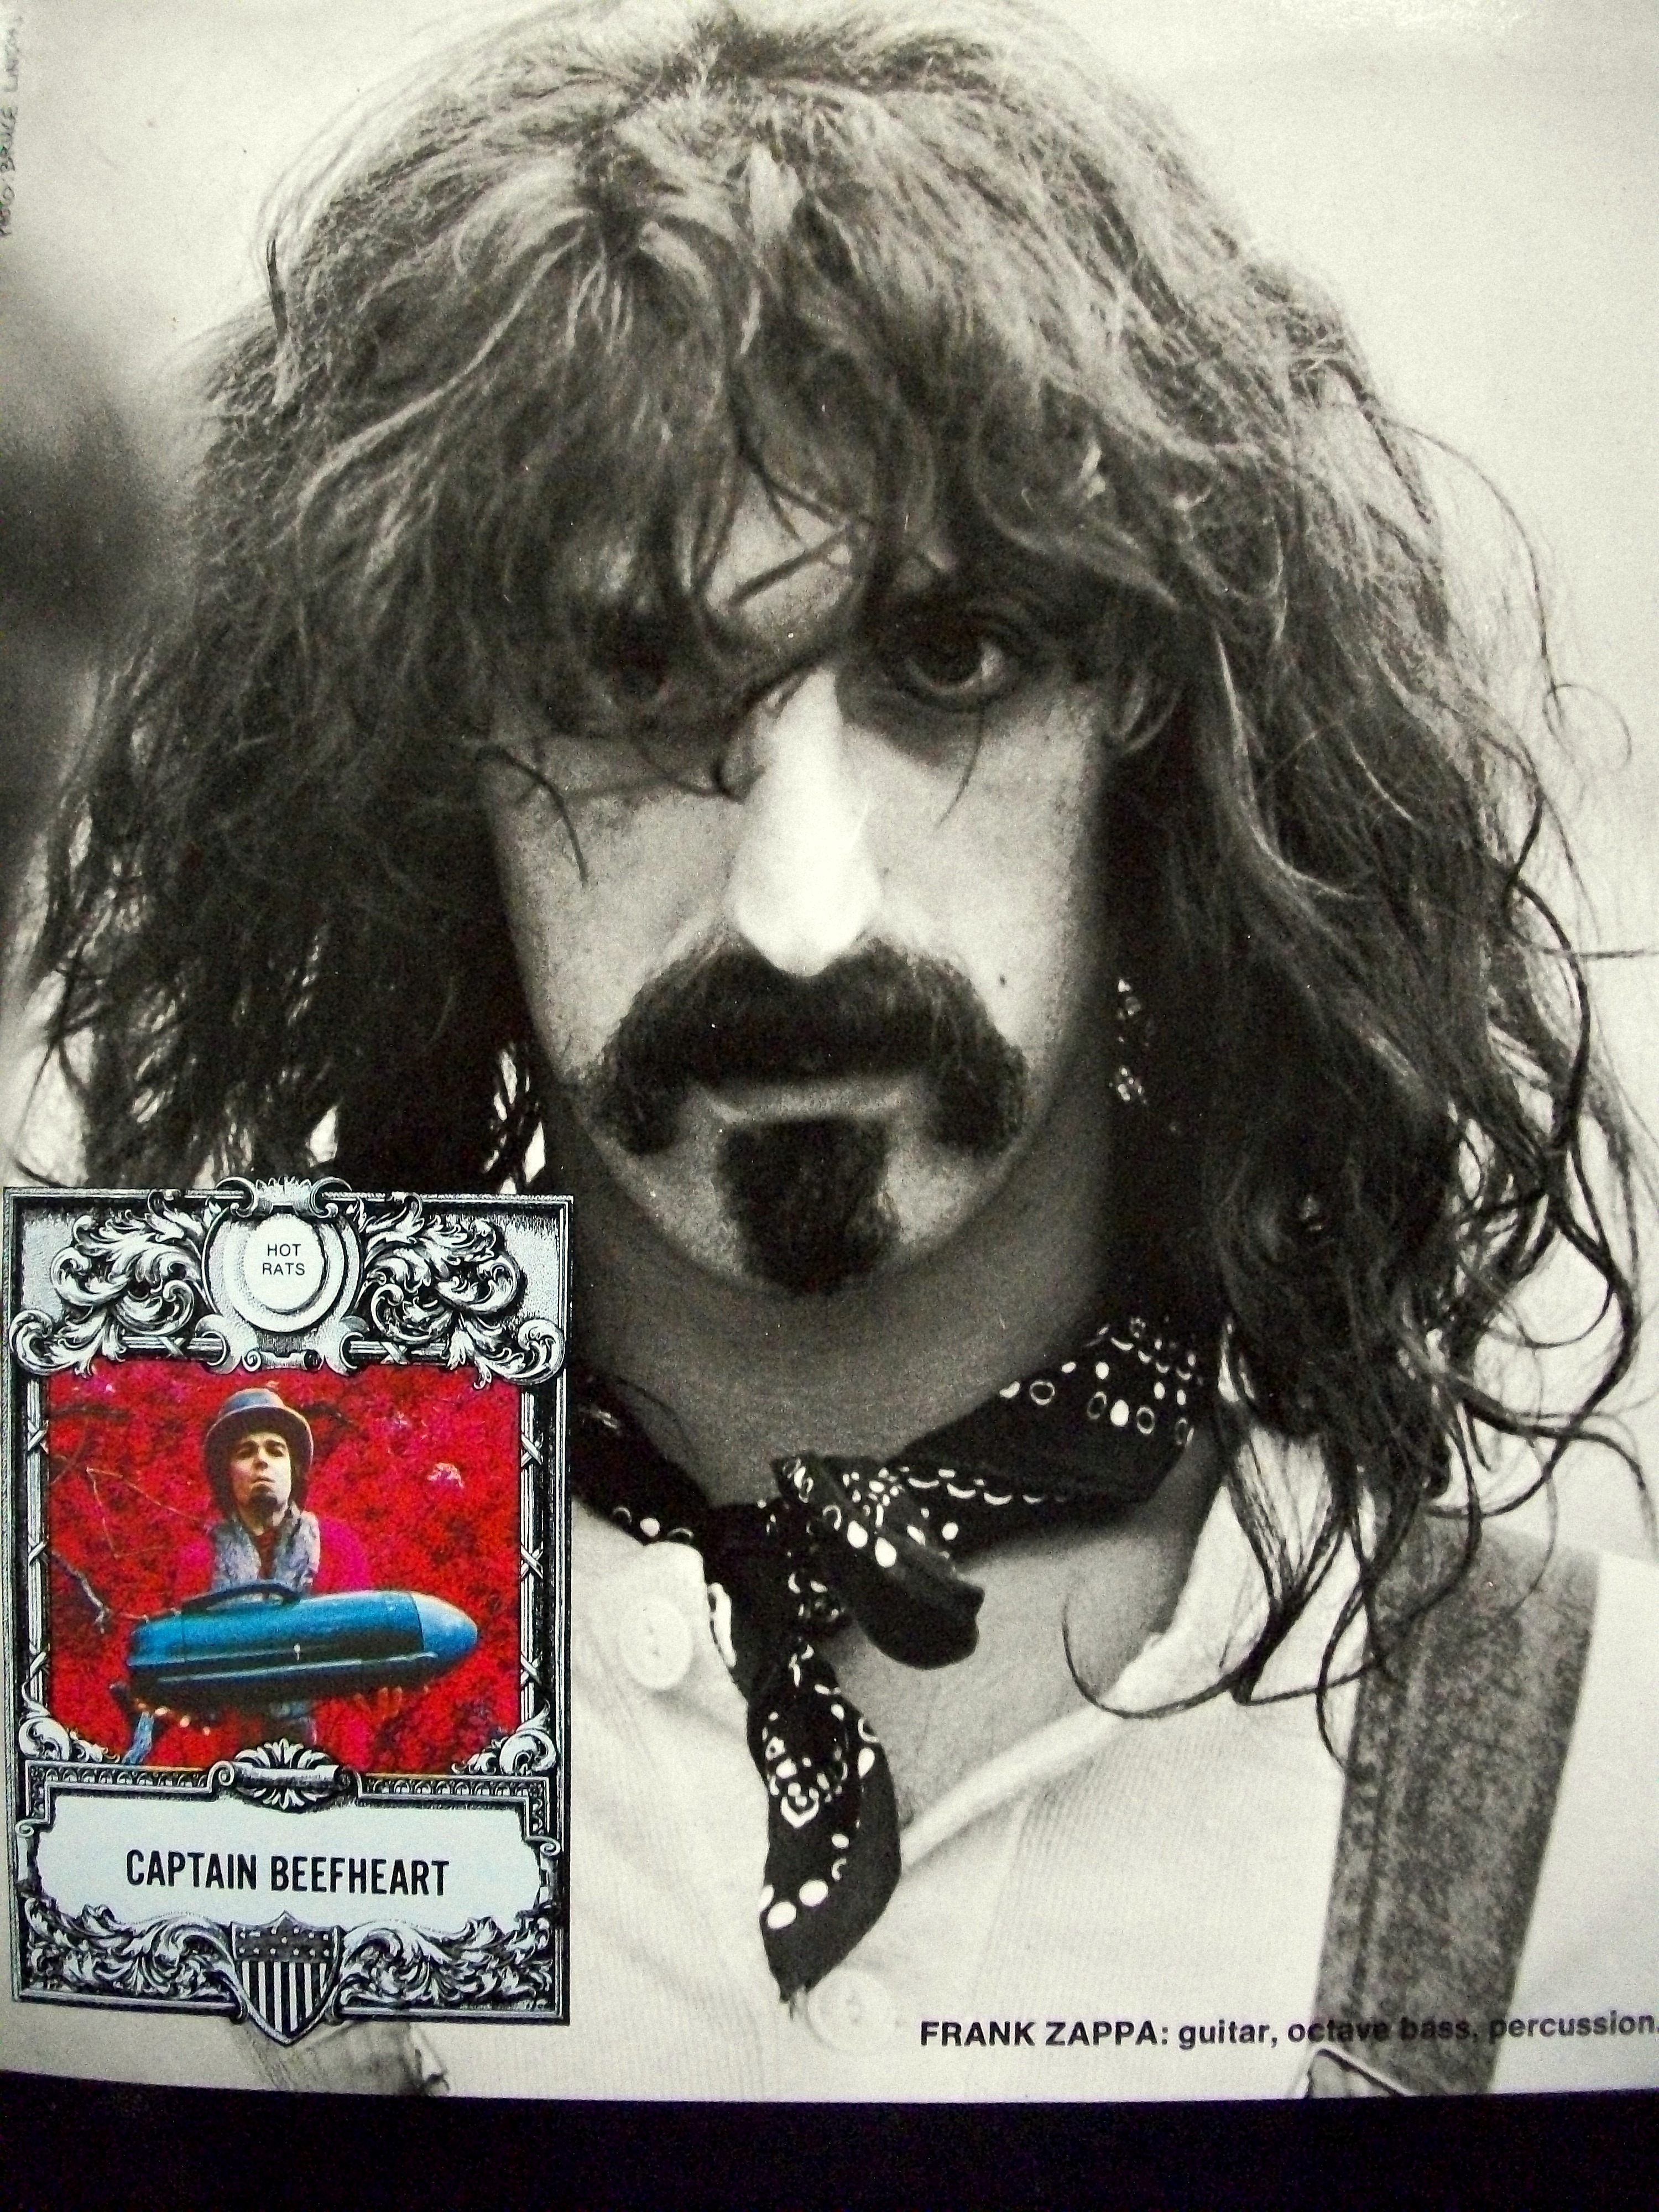 a biography of frank zappa the guitarist